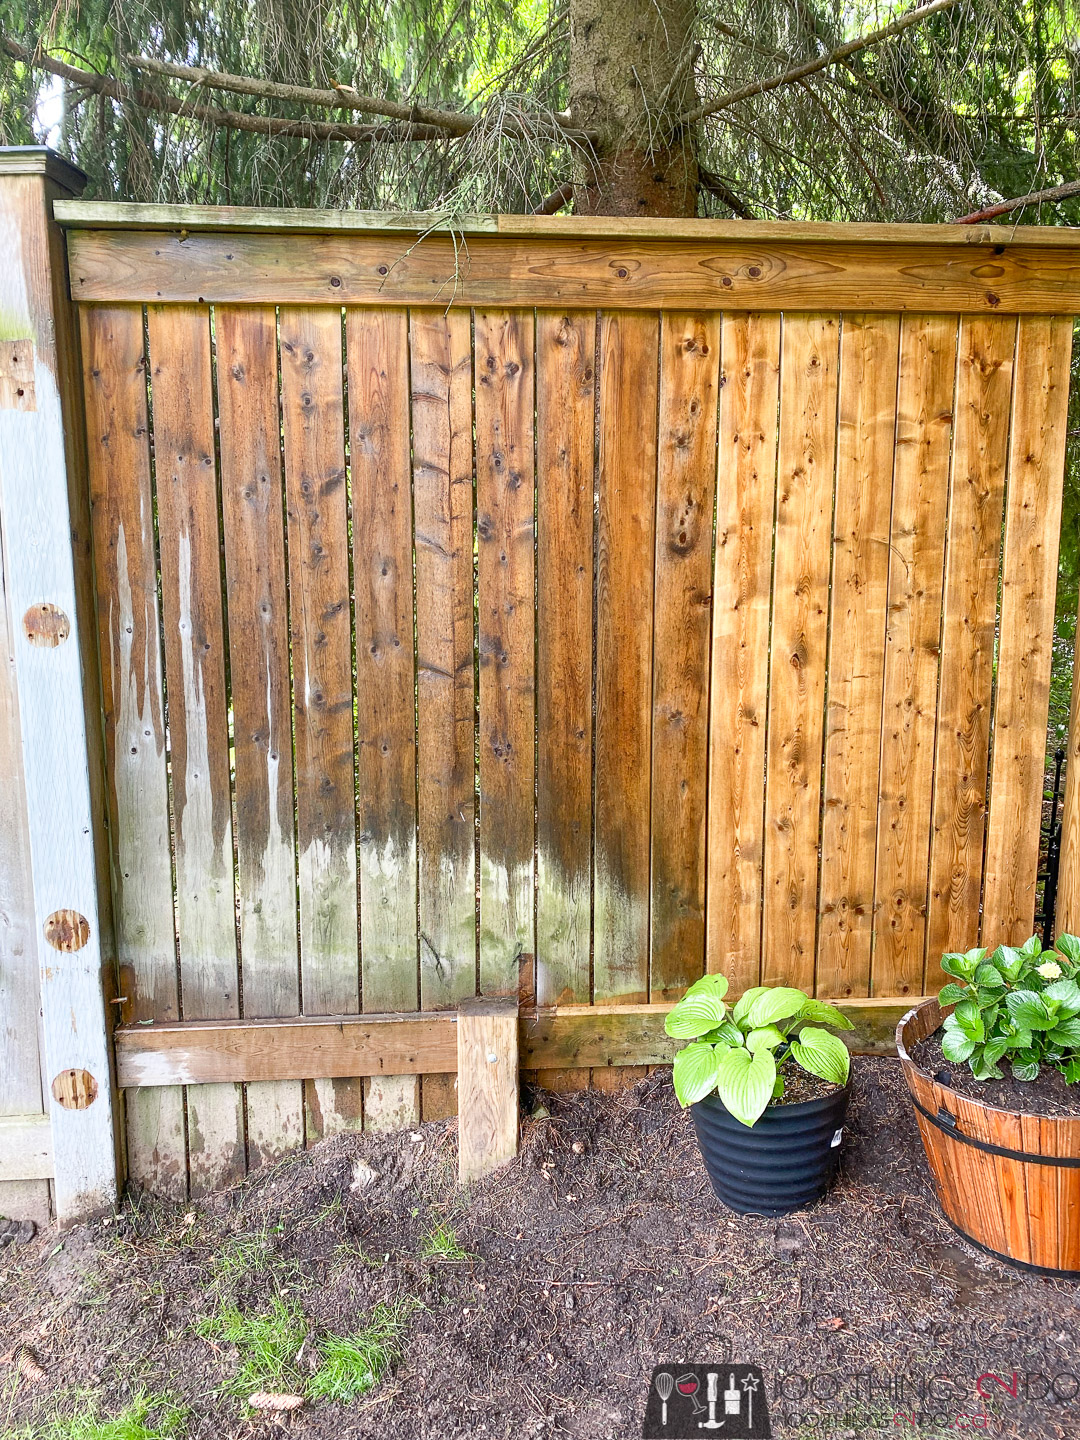 pressure washing your fence